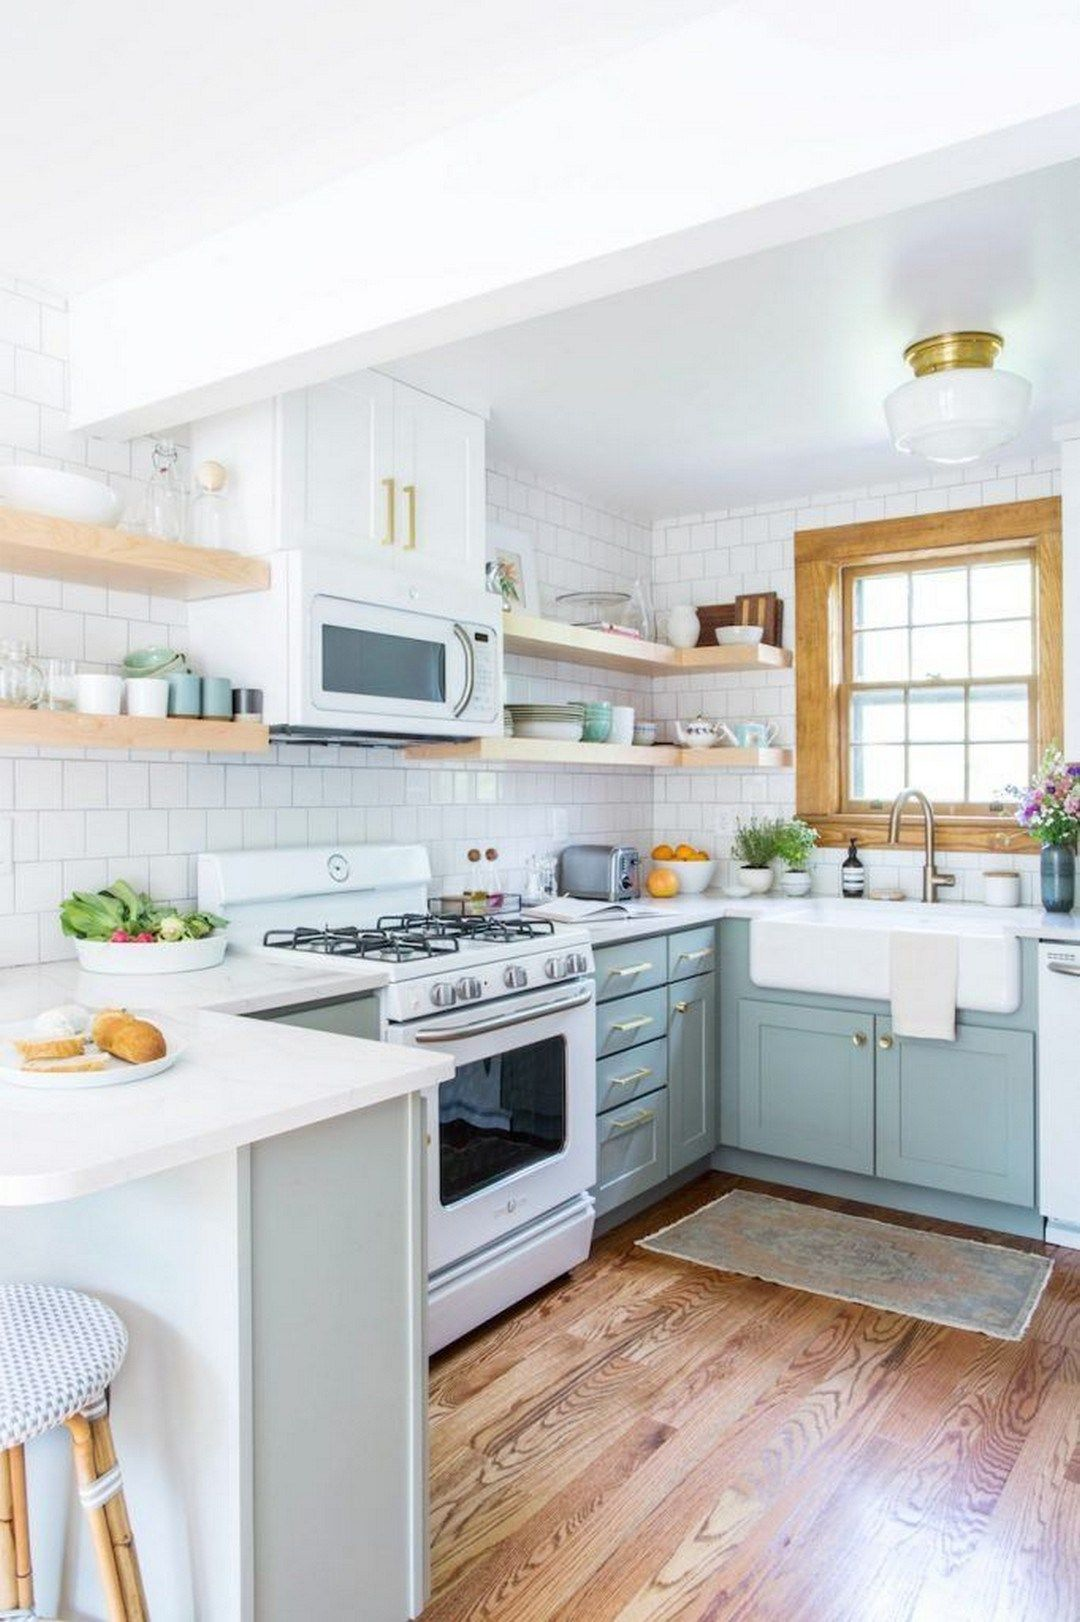 31 Best Small Kitchen Remodeling On Pinterest 15 Kitchen Remodel Small Kitchen Remodel Cost Kitchen Interior